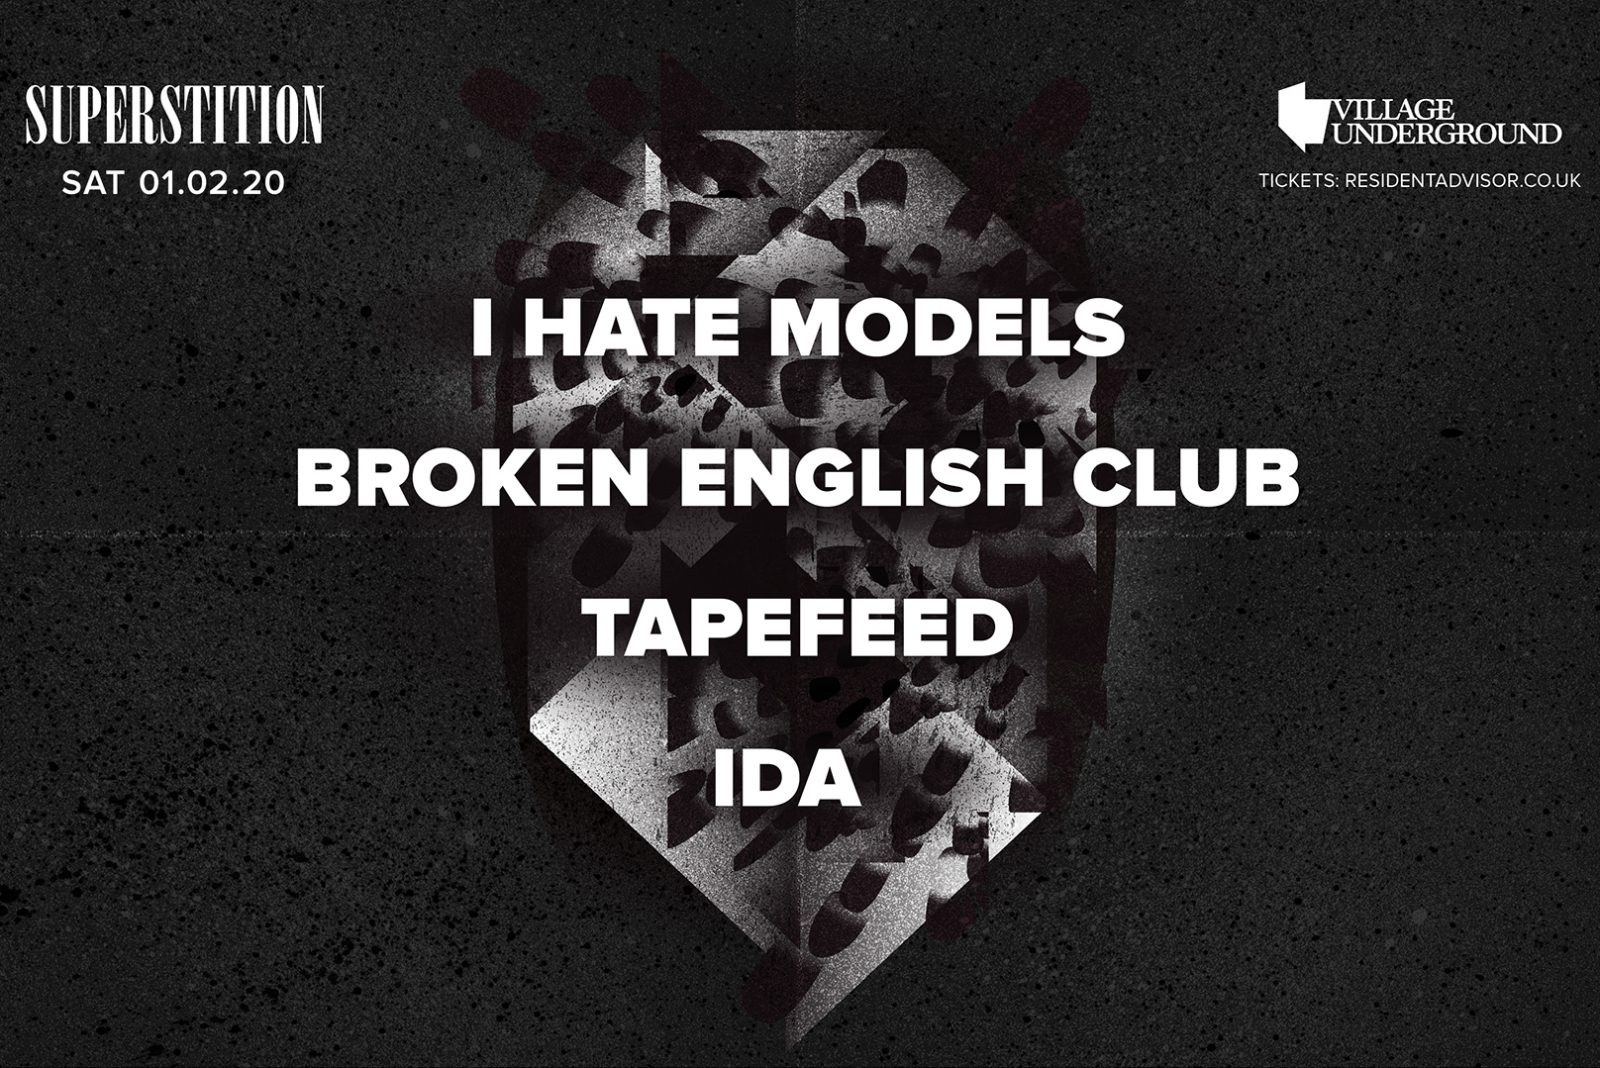 I Hate Models, Broken English Club, Tapefeed, IDA